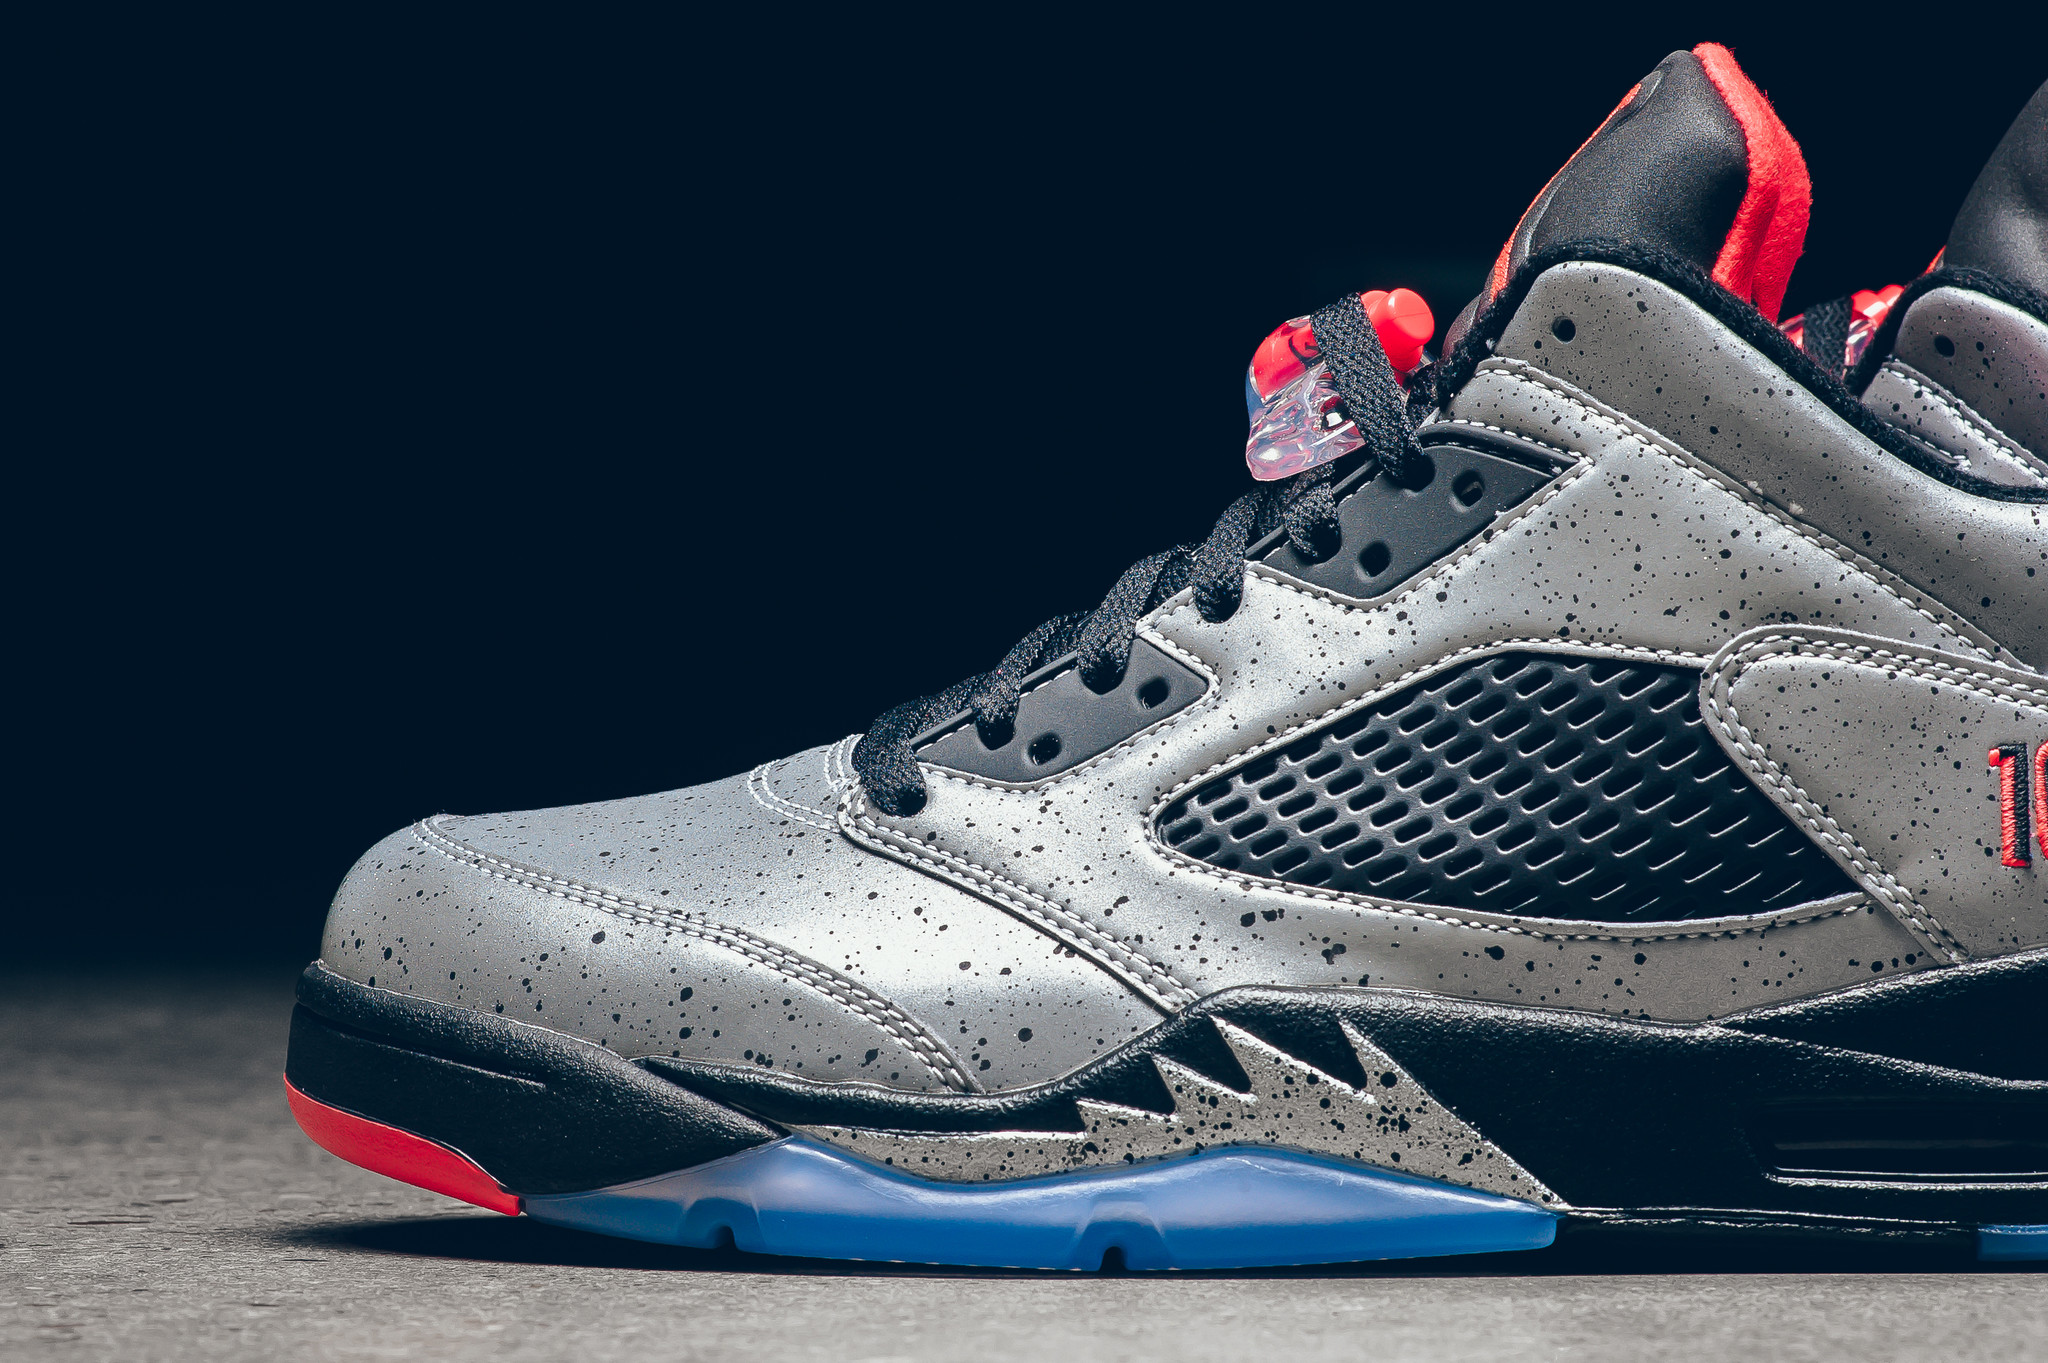 617f410ce5b33d Air Jordan 5 Retro Low Neymar - Another Look - Air 23 - Air Jordan Release  Dates